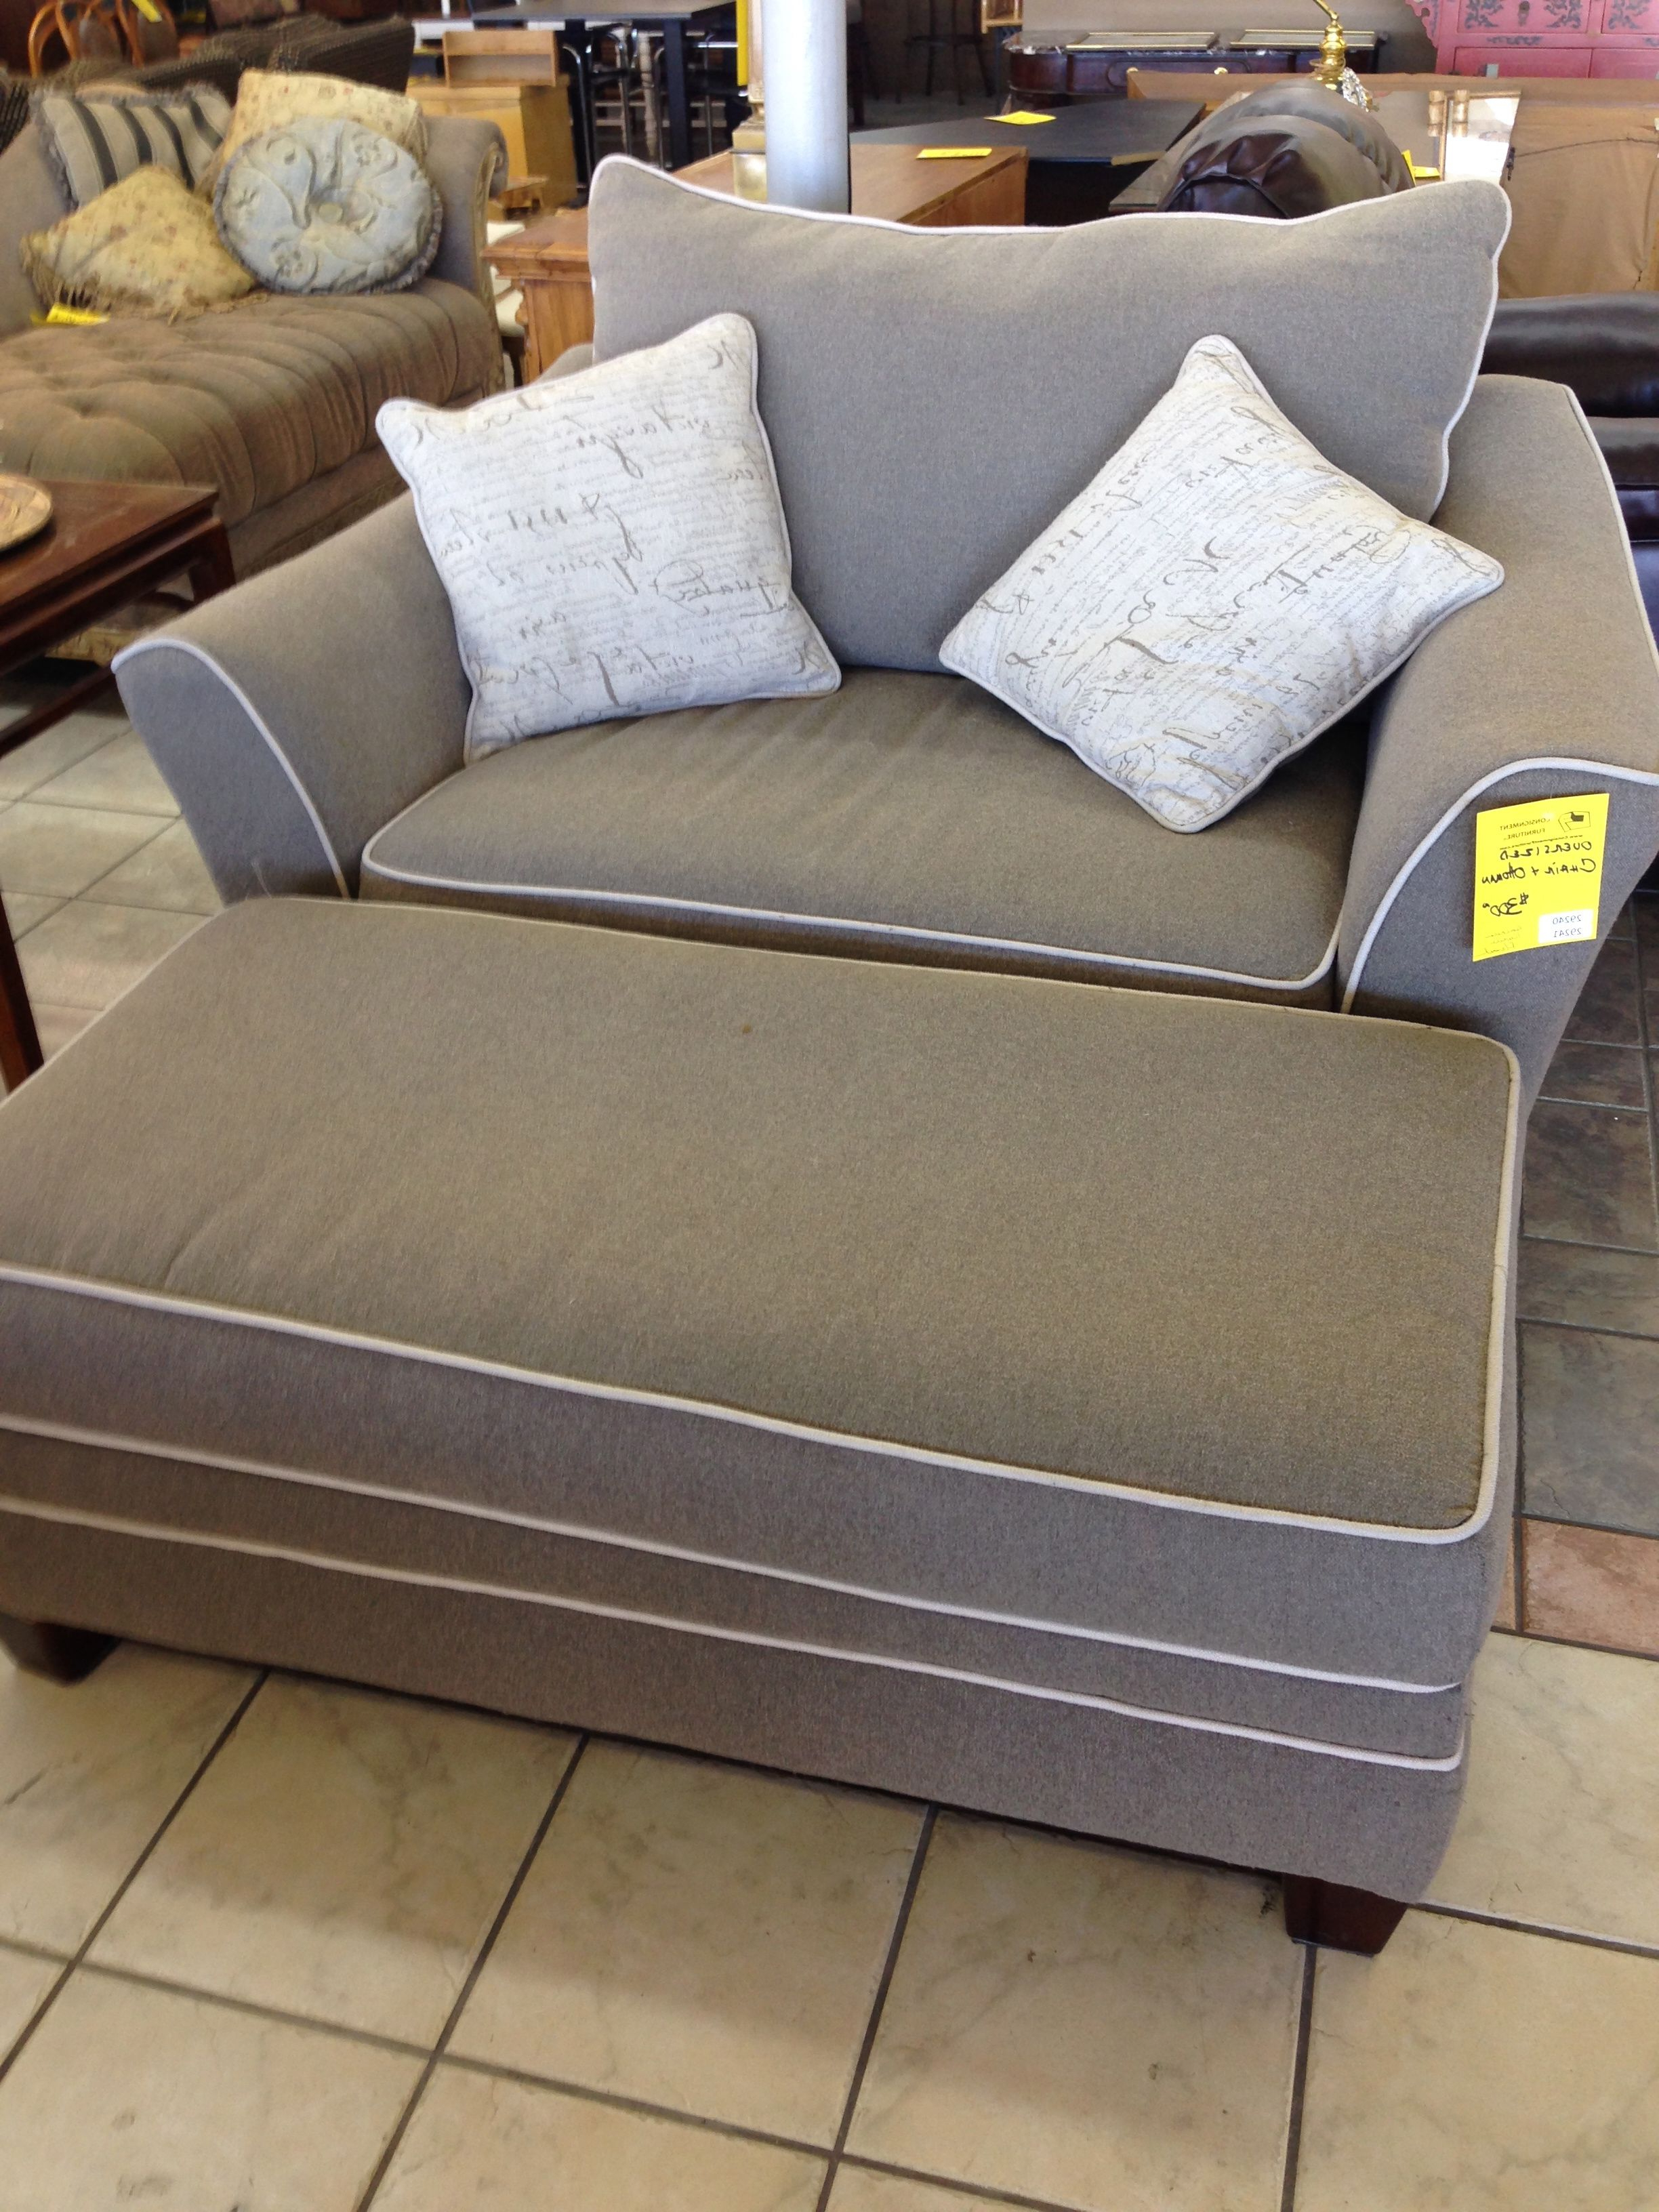 2019 Sofa Chair With Ottoman Pertaining To Stylish Grey Fabric Oversized Chairs With Rectangle Ottoman In (View 3 of 20)